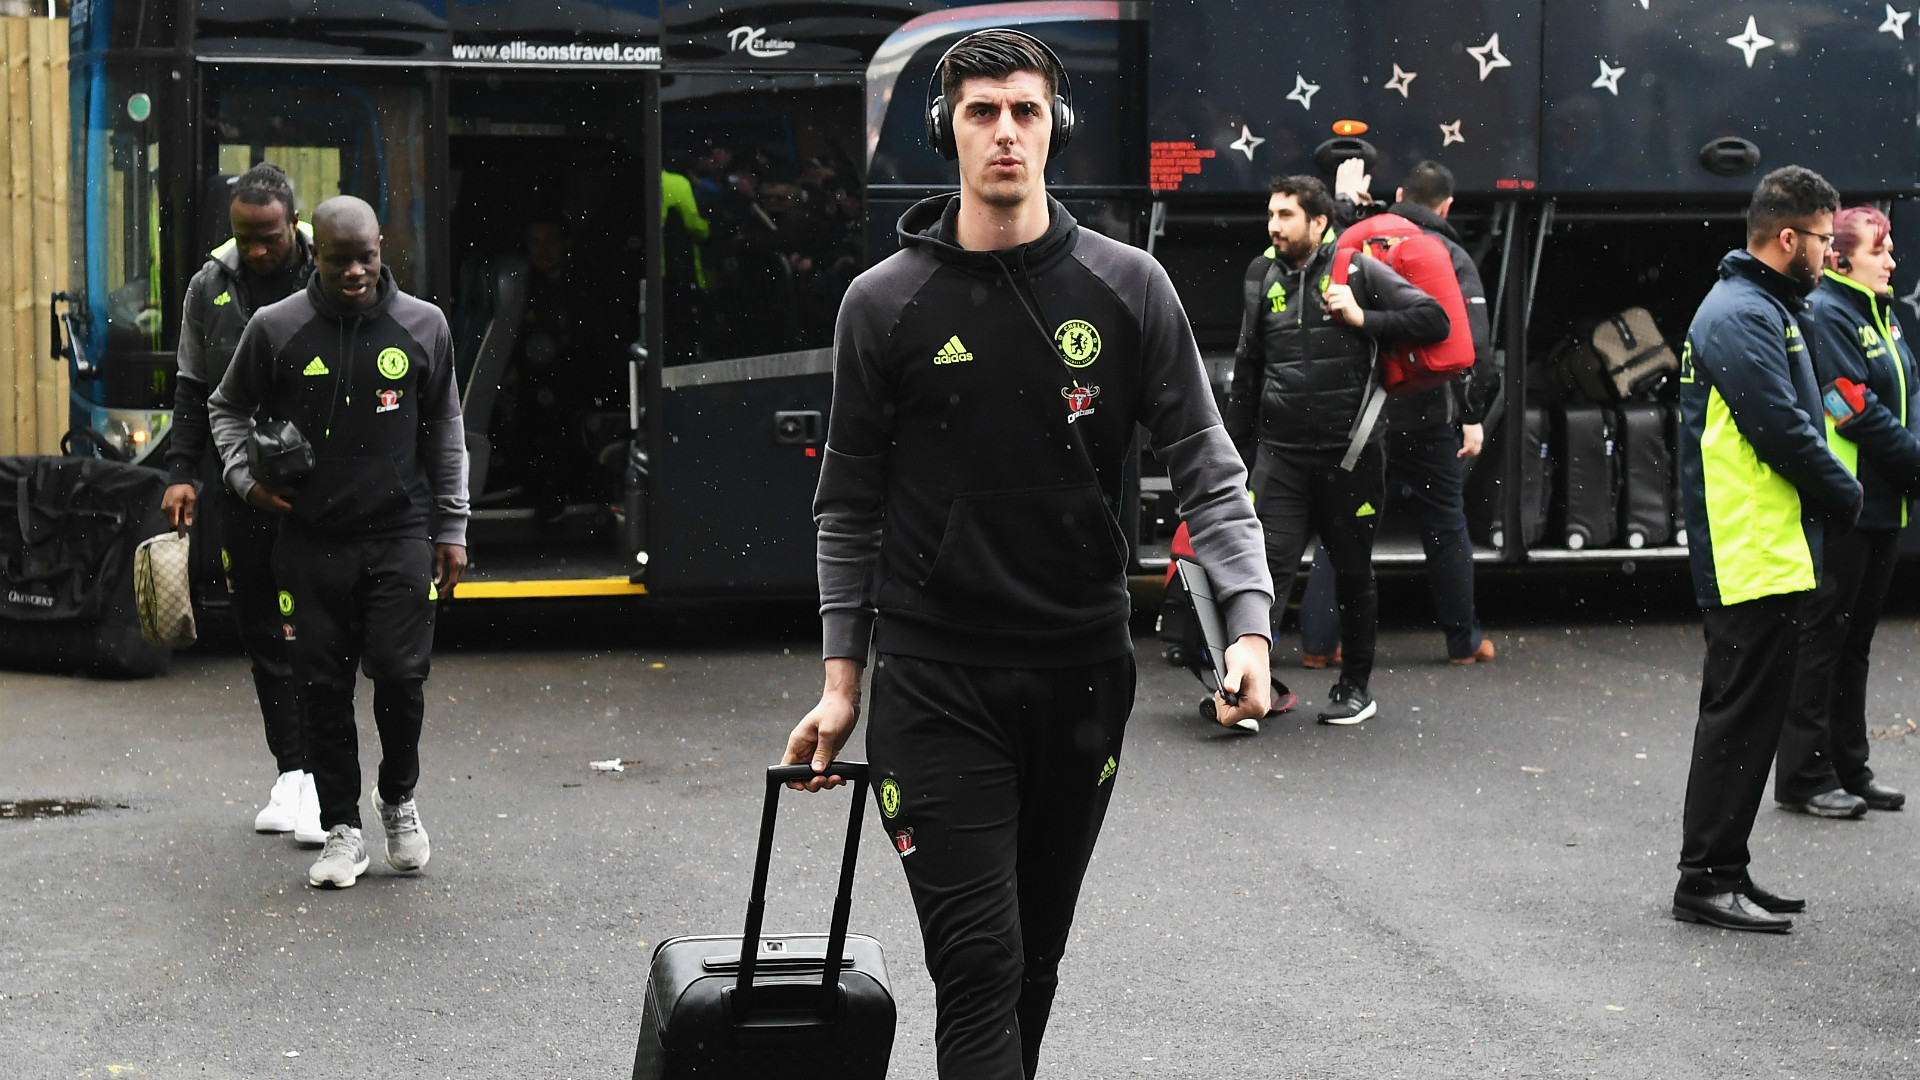 thibaut-courtois-chelsea_rz423o0g67eh10mh4w0kwplw1